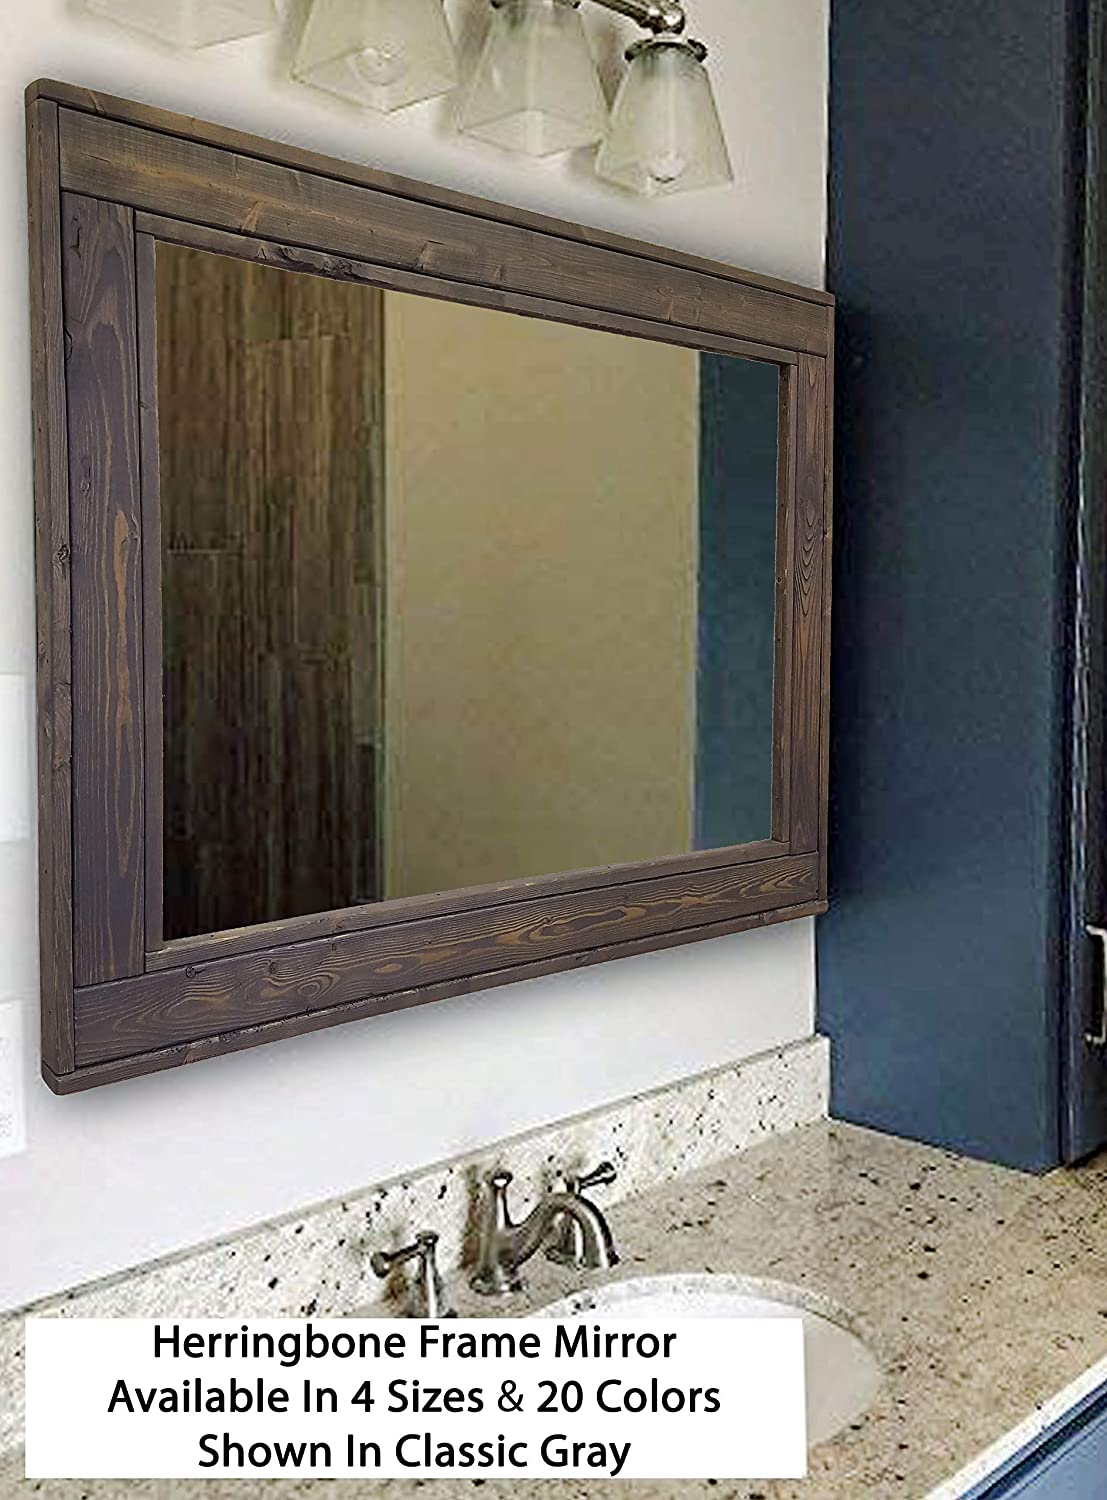 Available in 4 Sizes and 20 Stain colors: Shown in Classic Gray Rustic Decor Herringbone Reclaimed Wood EX LARGE Framed Mirror Bathroom Vanity Mirror Mirror Wall Mounted